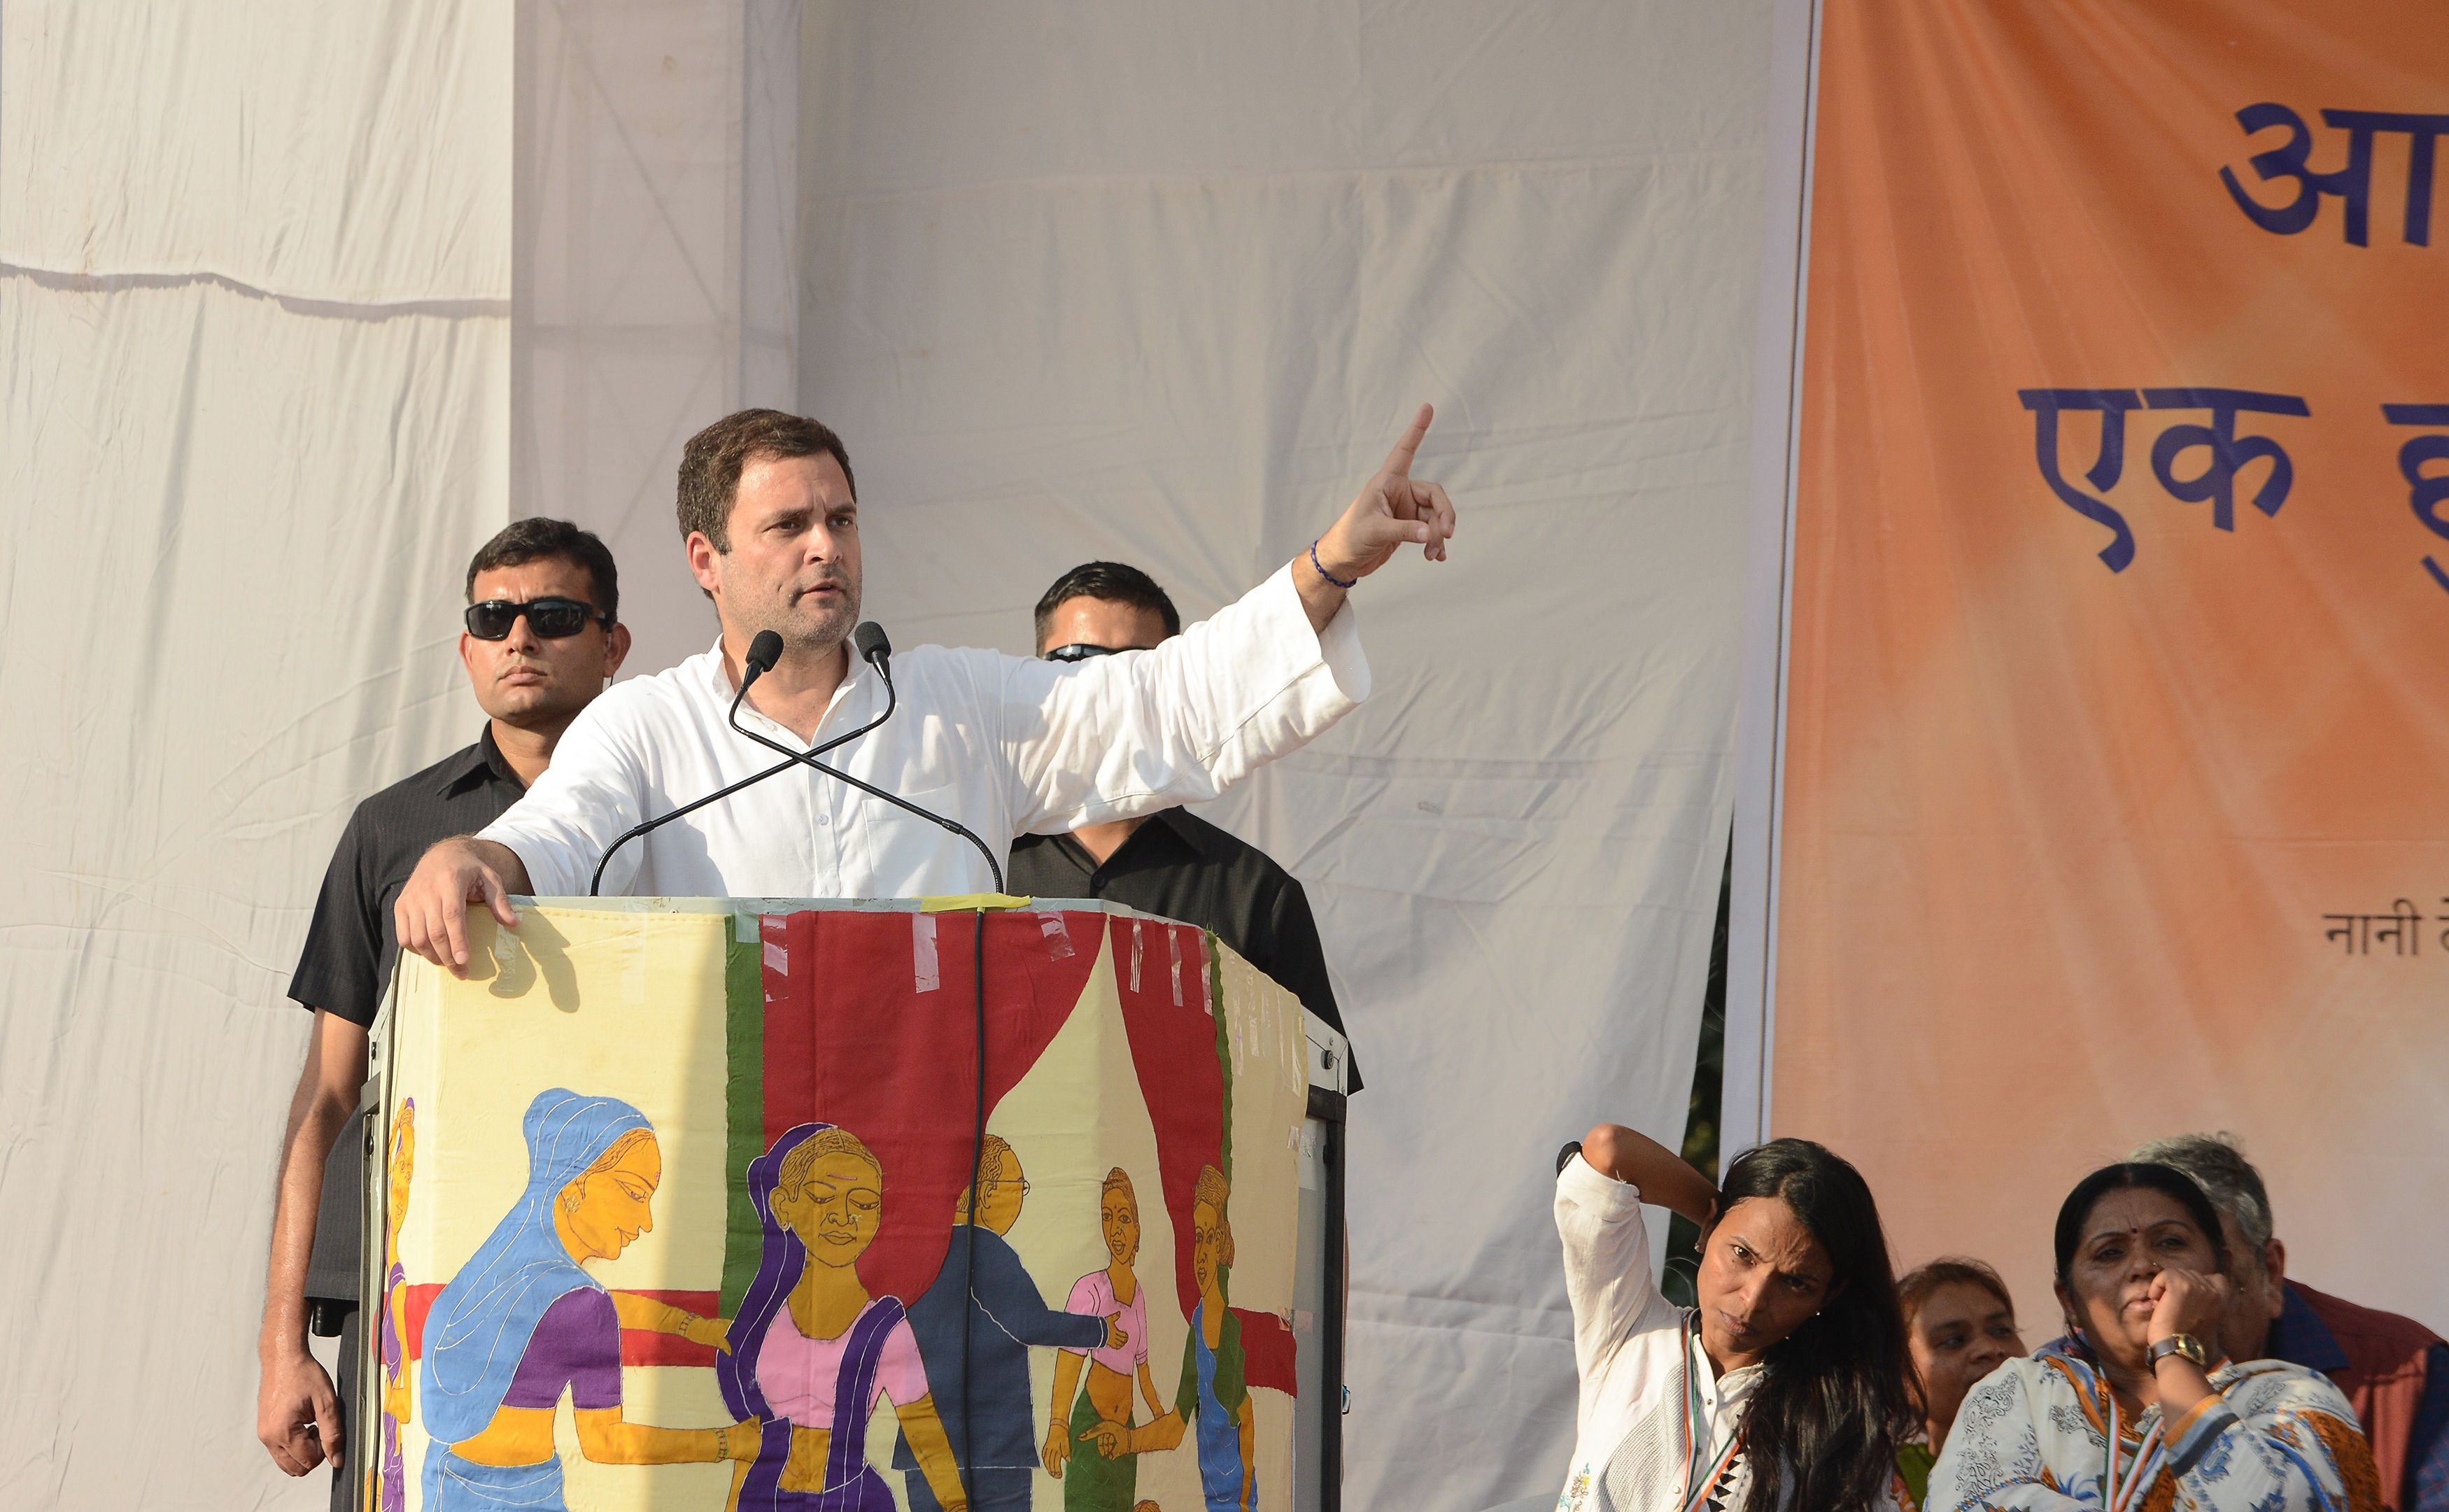 Post Gujarat, Congress Calls For Restoring Dignity In Public Discourse